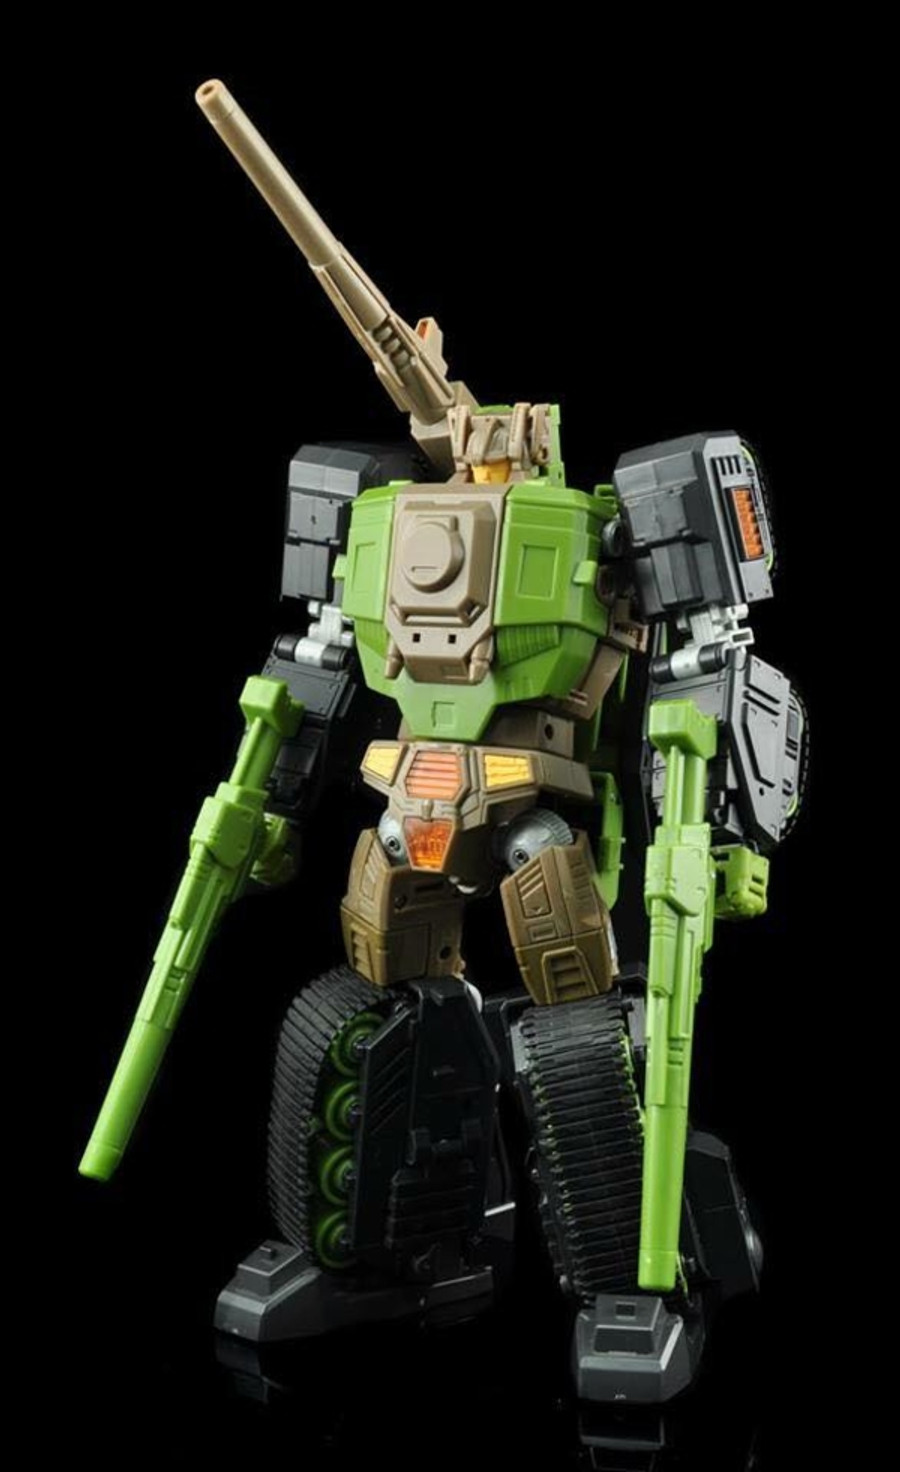 Maketoys Remaster Series - MTRM-04 Ironwill